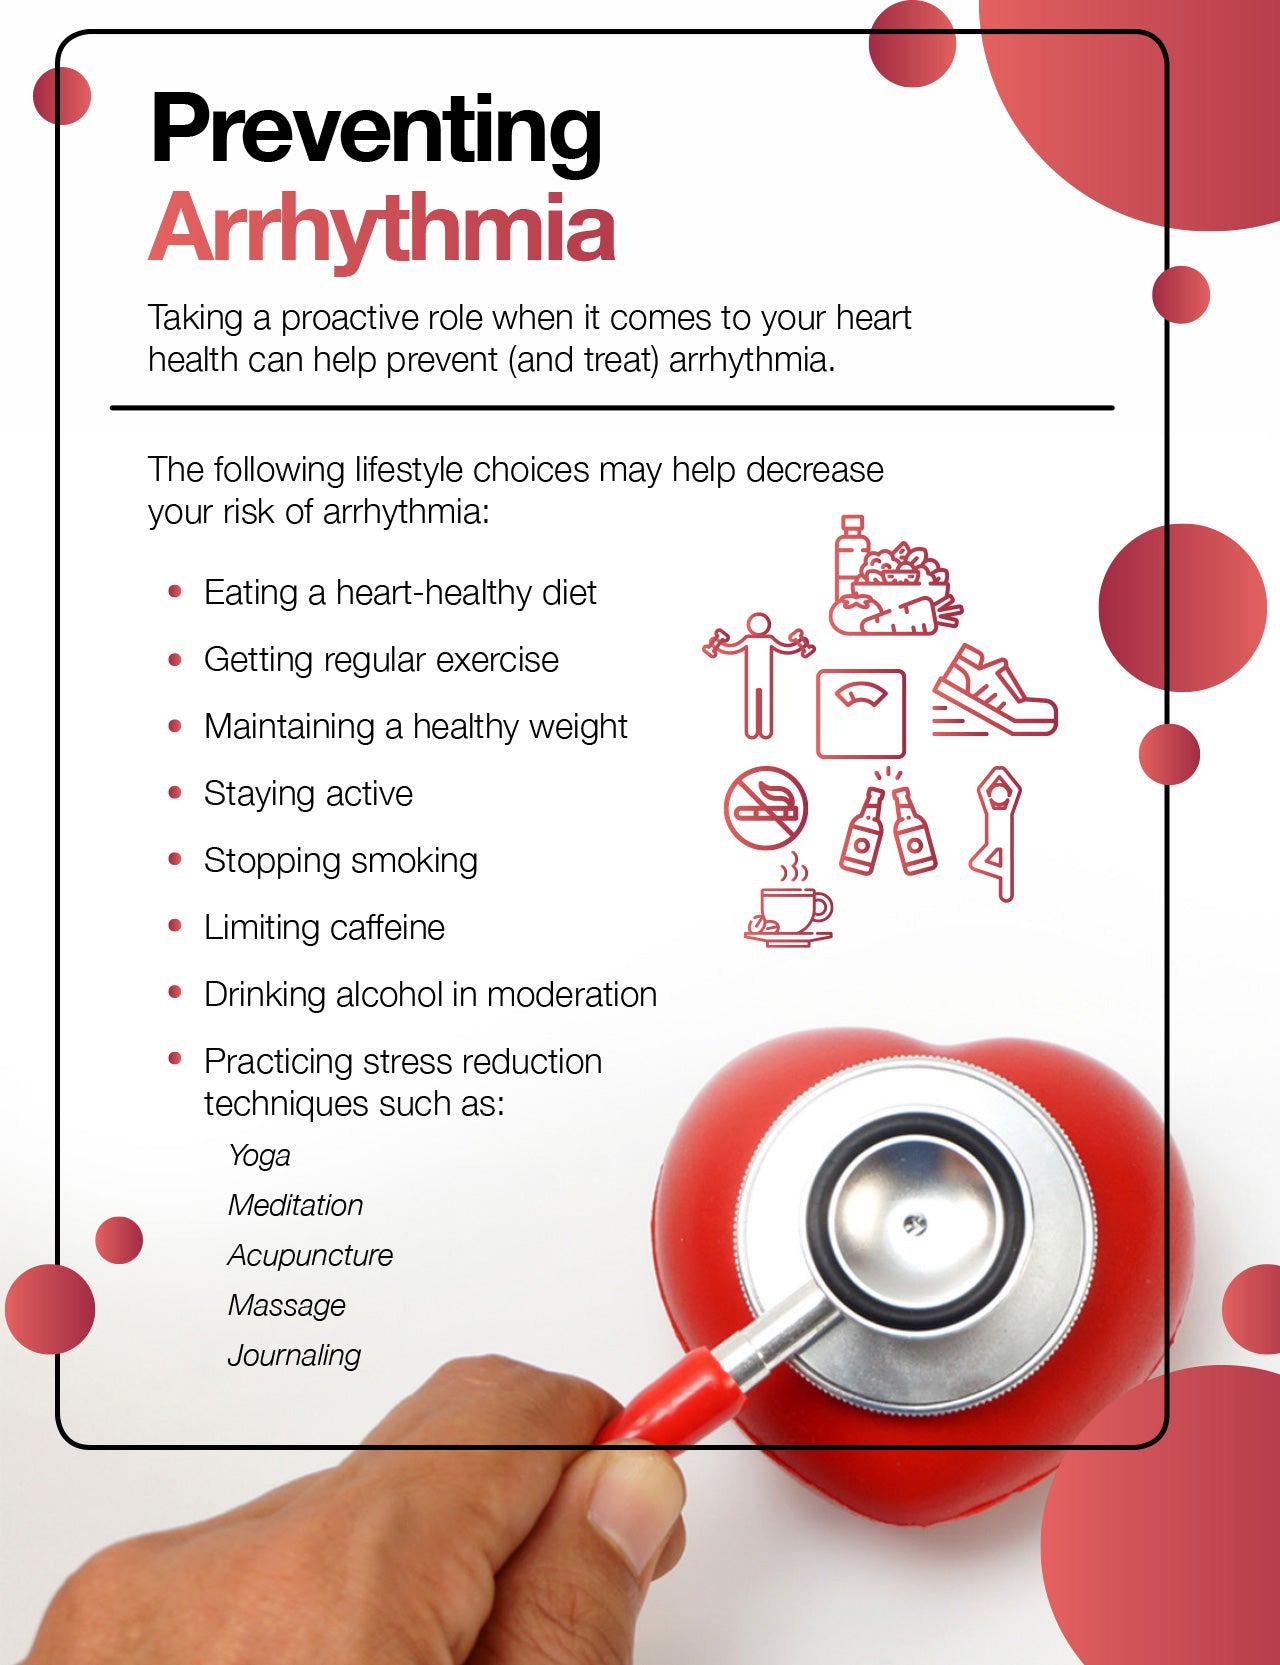 How to prevent arrhythmia